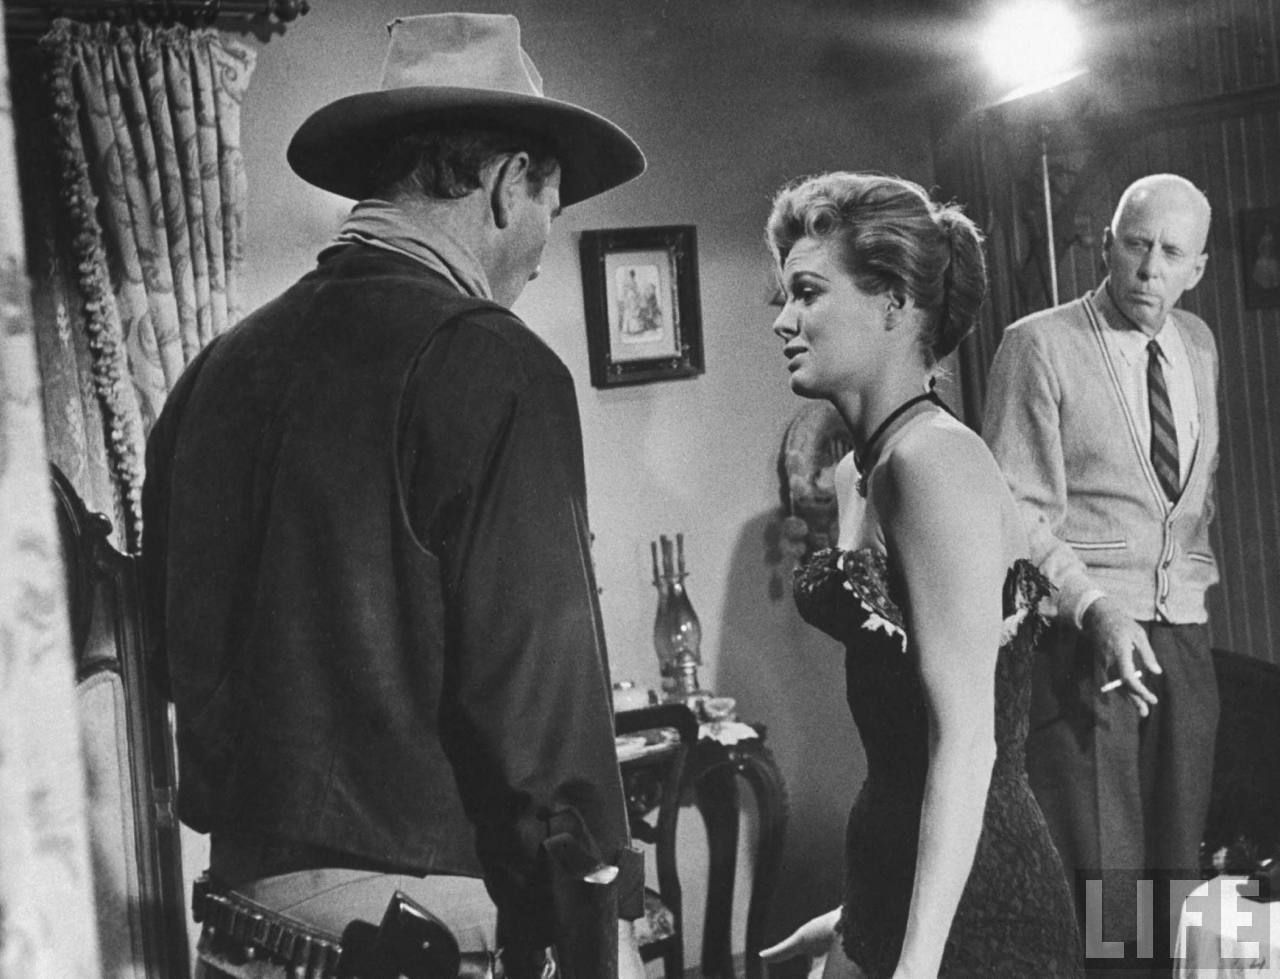 Howard Hawks coaching actress Angie Dickinson on set for Rio Bravo (1959).